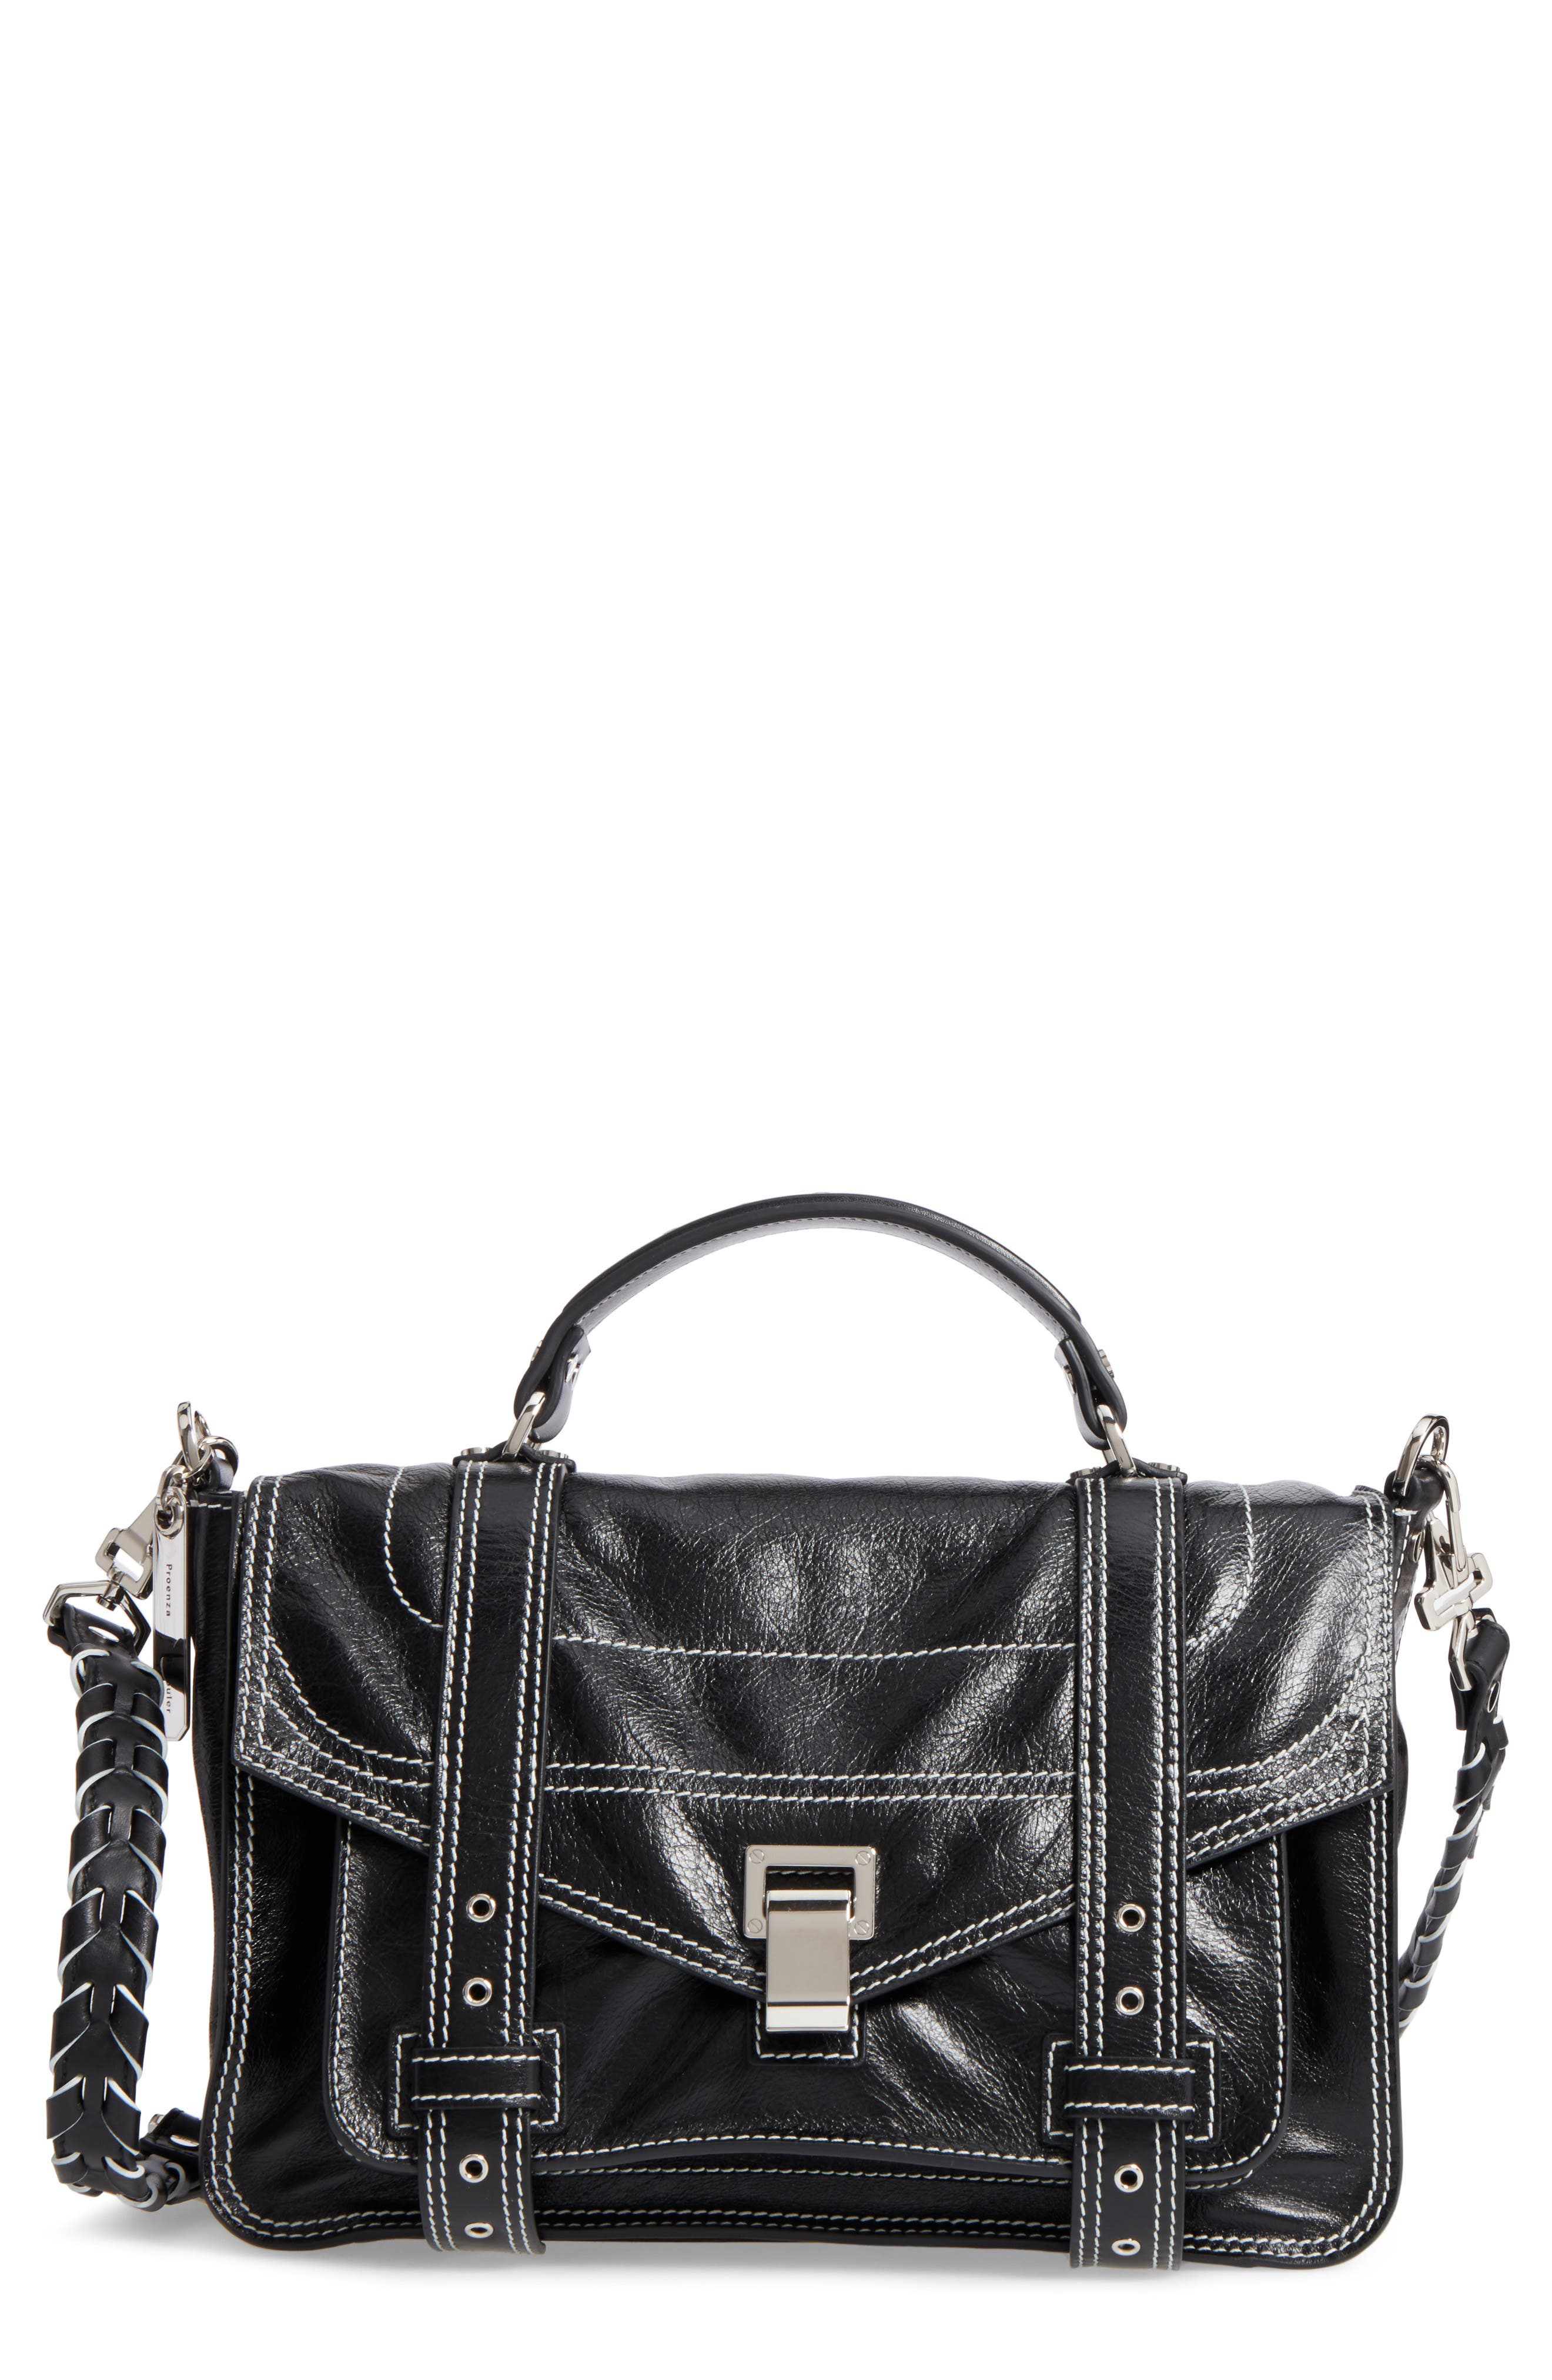 Proenza Schouler Medium PS1 Calfskin Leather Satchel